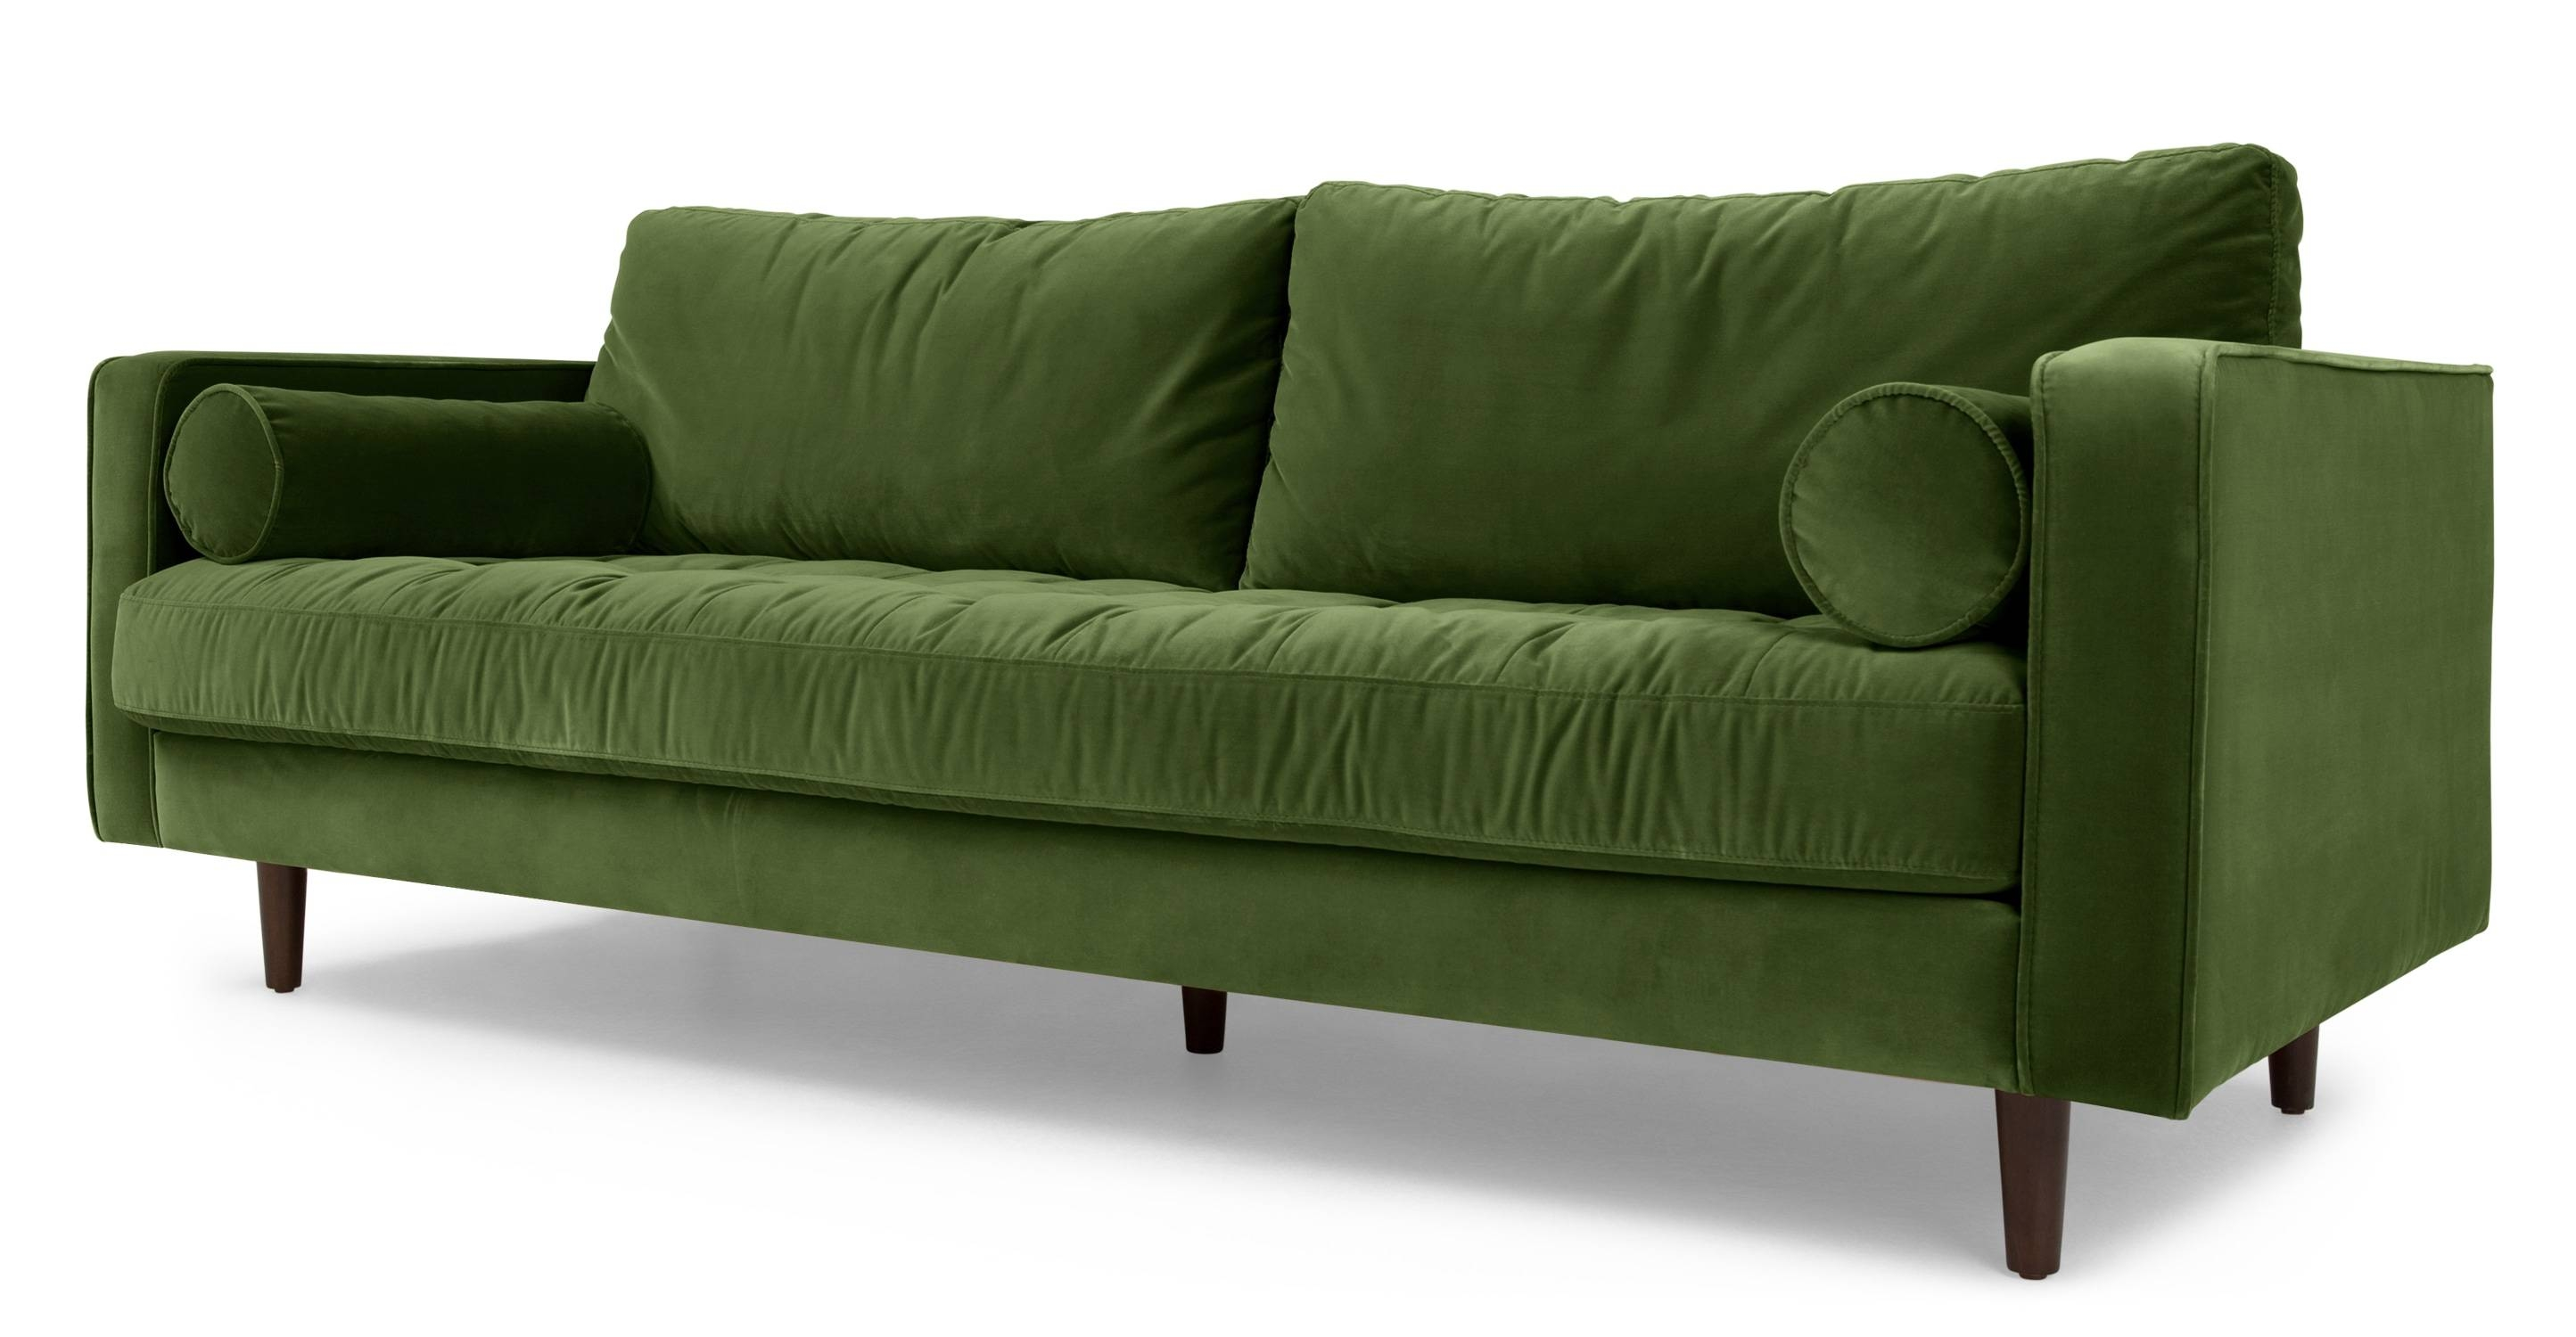 Scott 3 Seater Sofa, Grass Cotton Velvet | Made with regard to Green Sofa Chairs (Image 24 of 30)